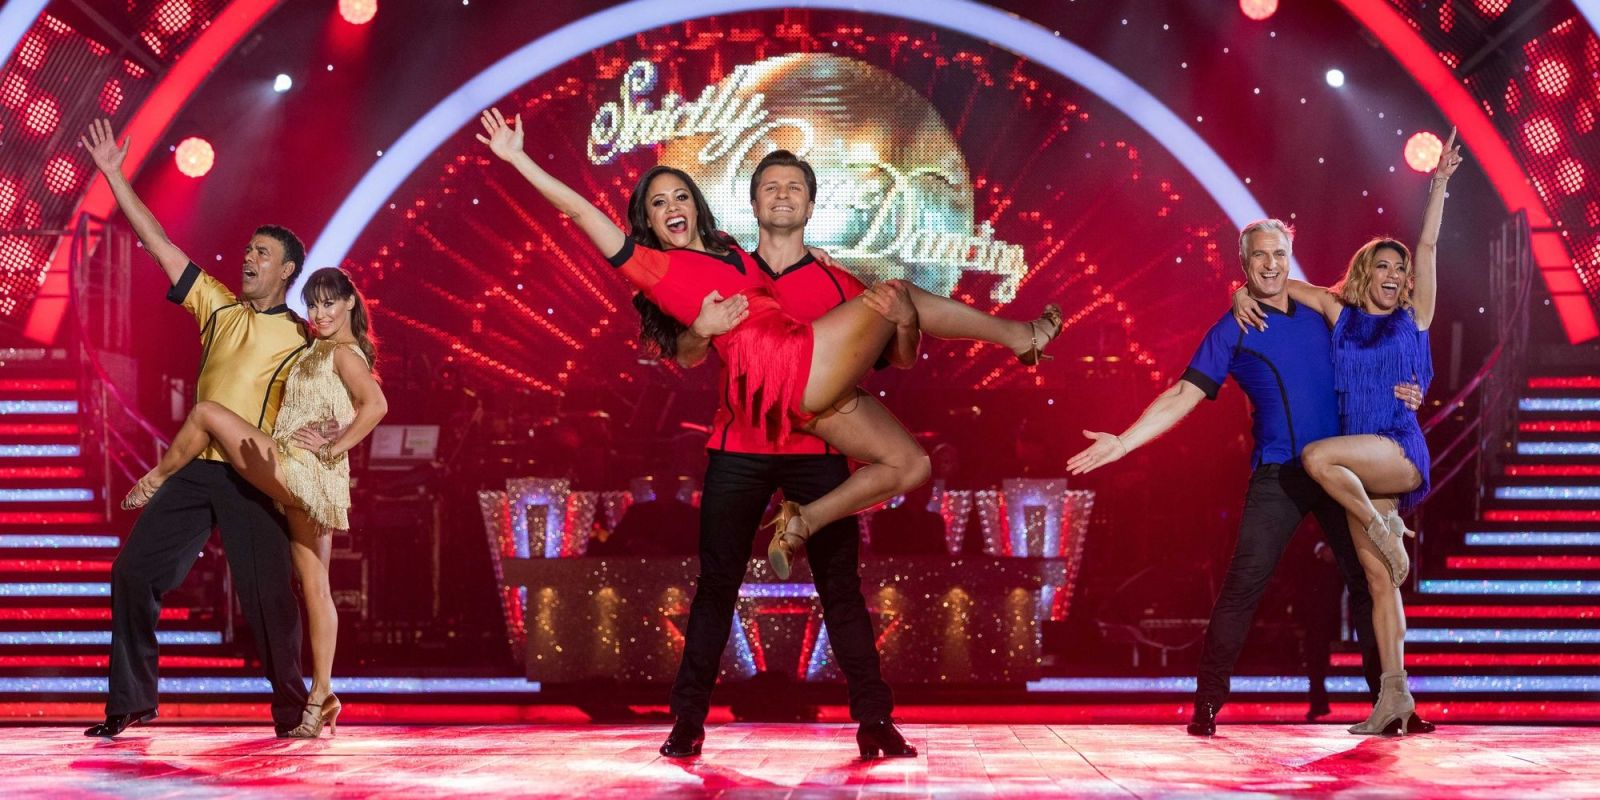 Strictly Come Dancing crowns footballer Alex Scott as its Sport Relief 2018 champion